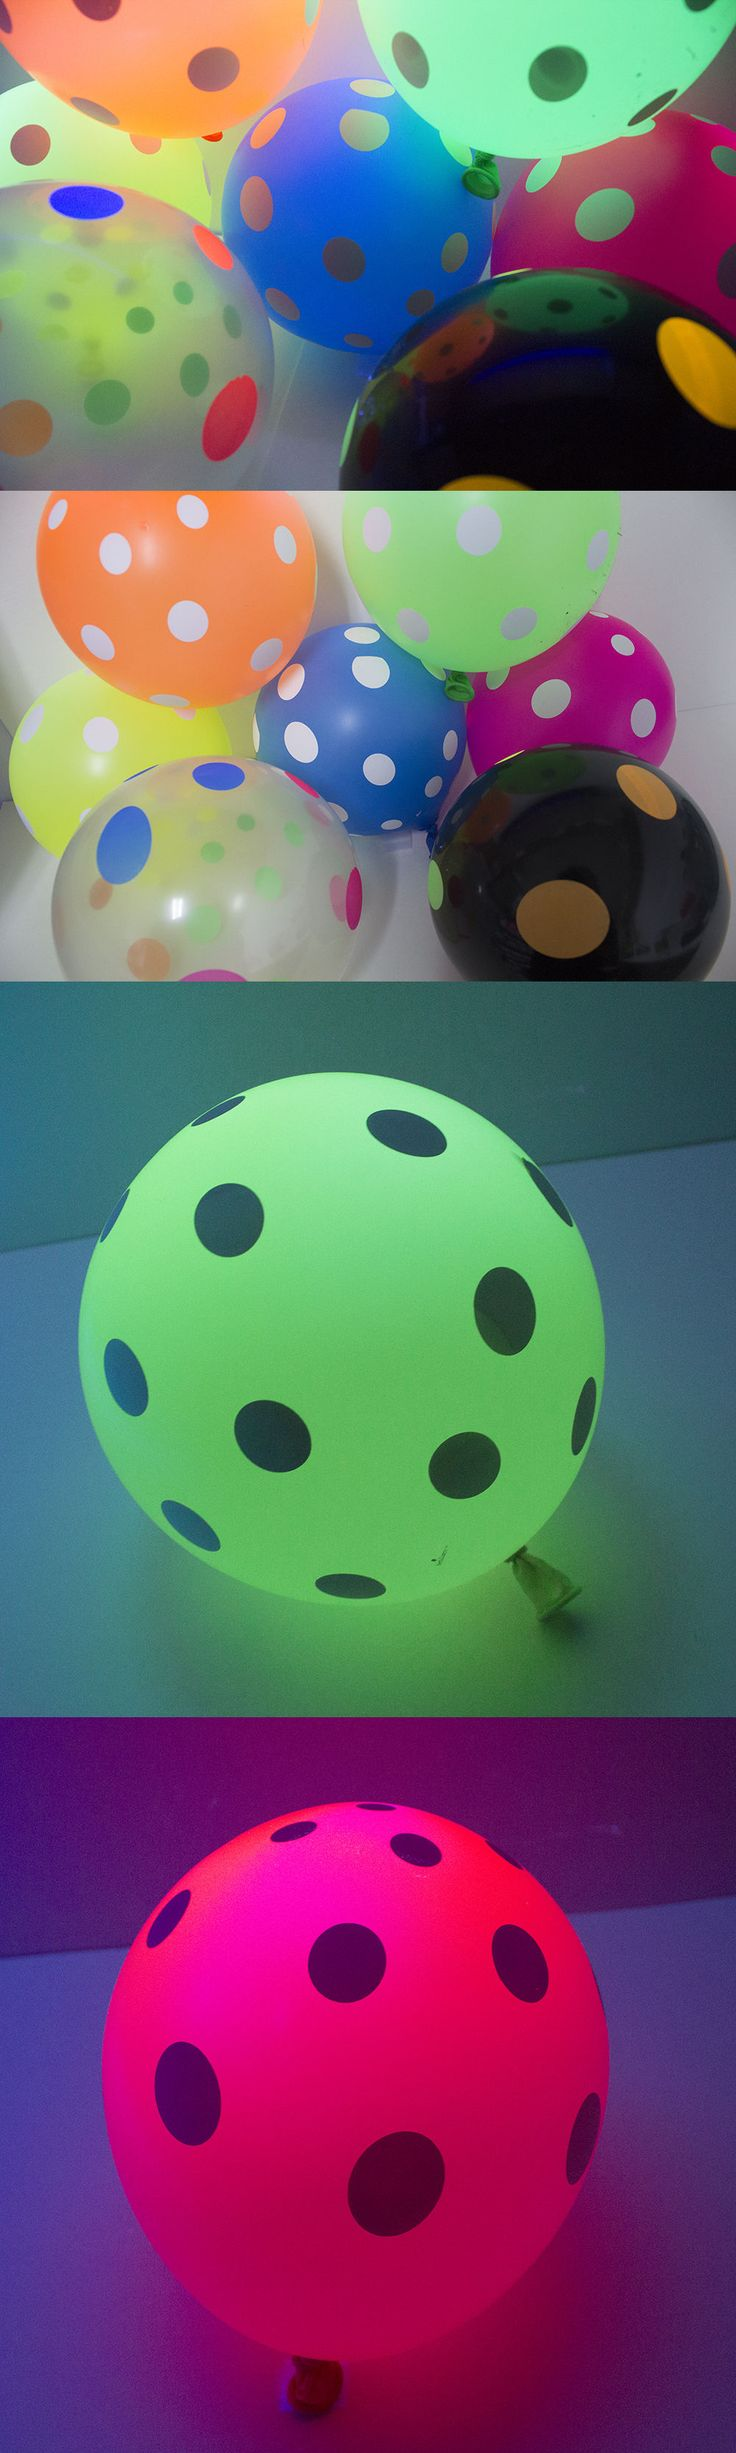 Other Kids and Teens Items 176989: Neon Black Light Uv Balloons Polka Dot 100 Count, 7 Assorted Colors Latex Helium -> BUY IT NOW ONLY: $38 on eBay!